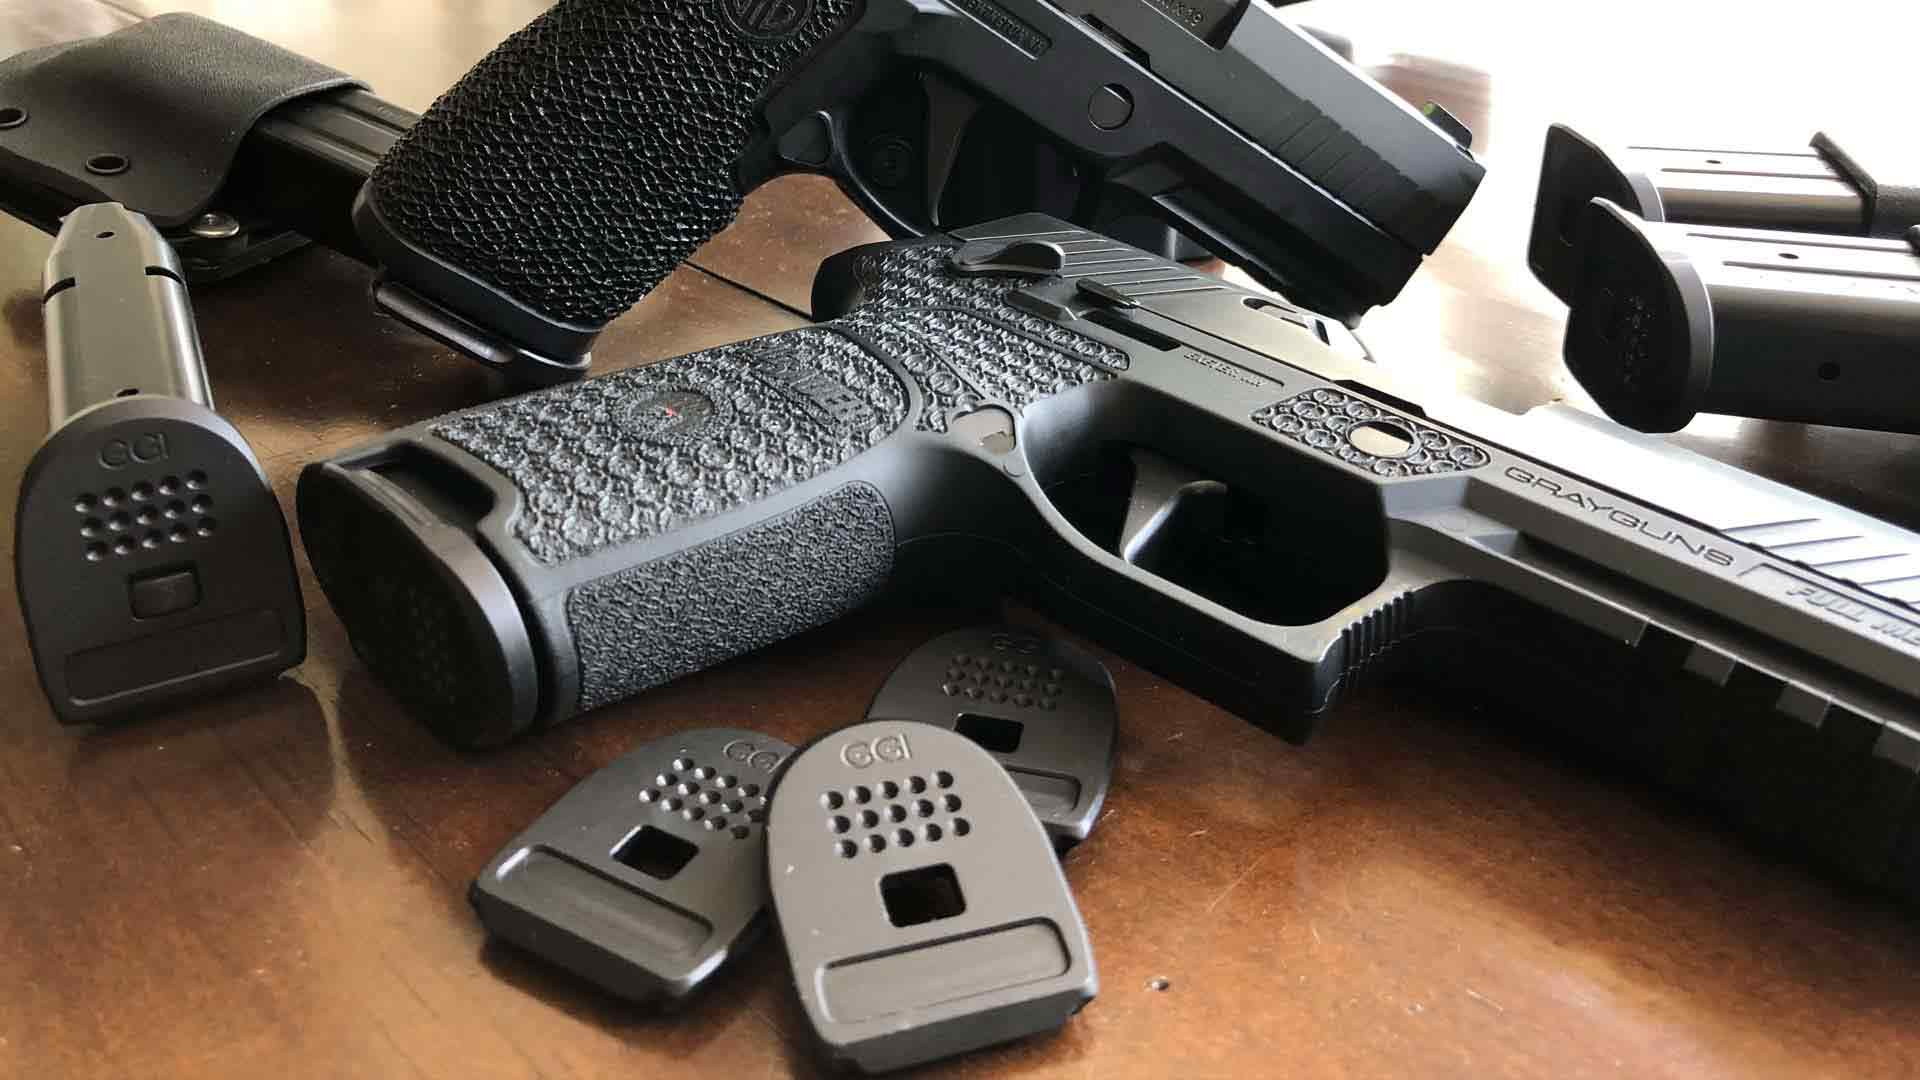 SIG Laser Sculpted Grip Modules